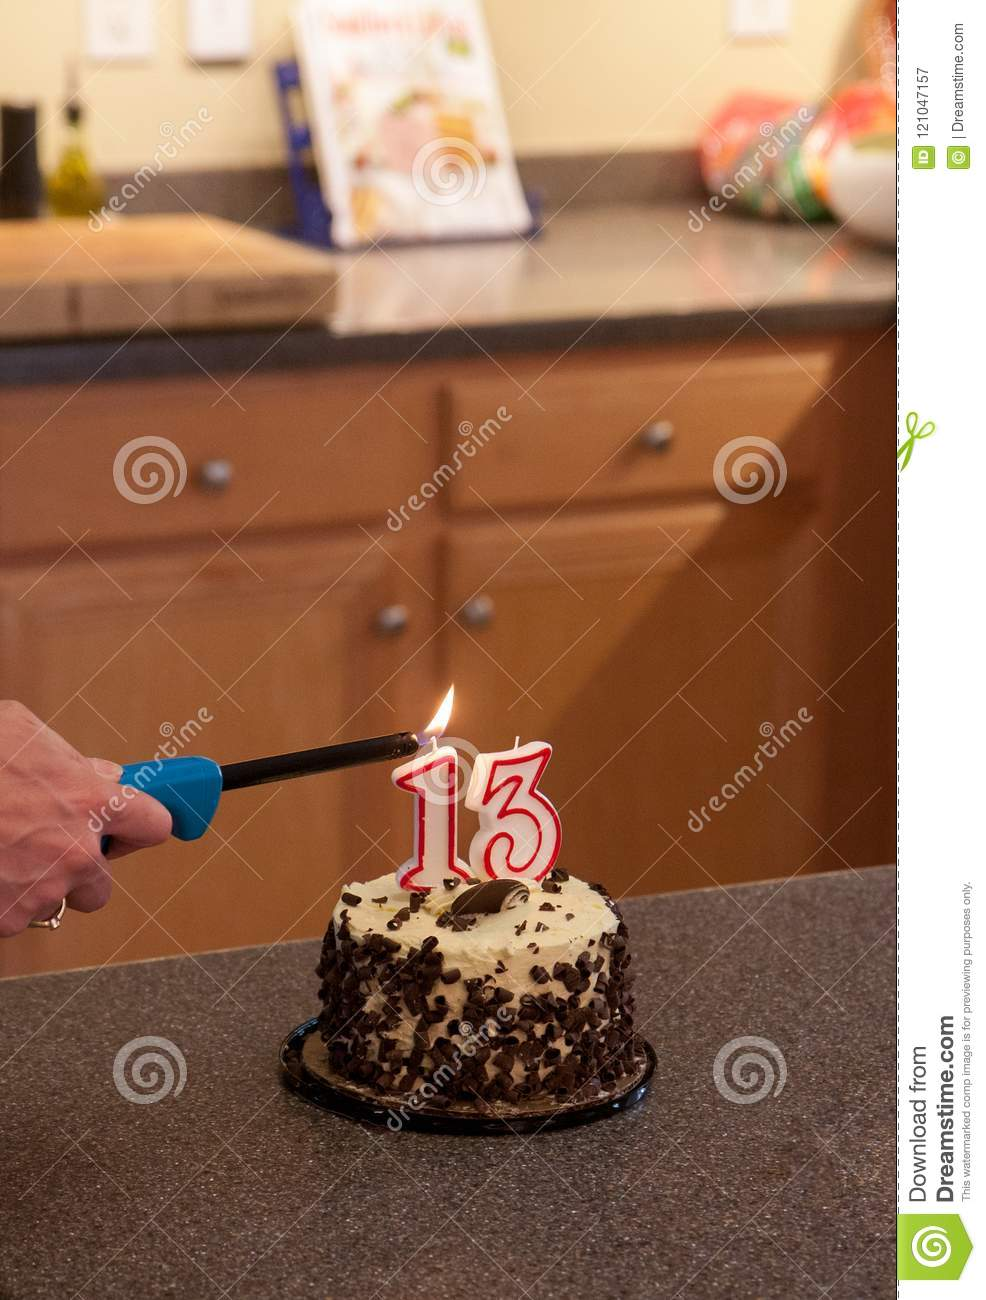 Birthday Cake For The 13 Year Old Stock Image Image Of Frosting